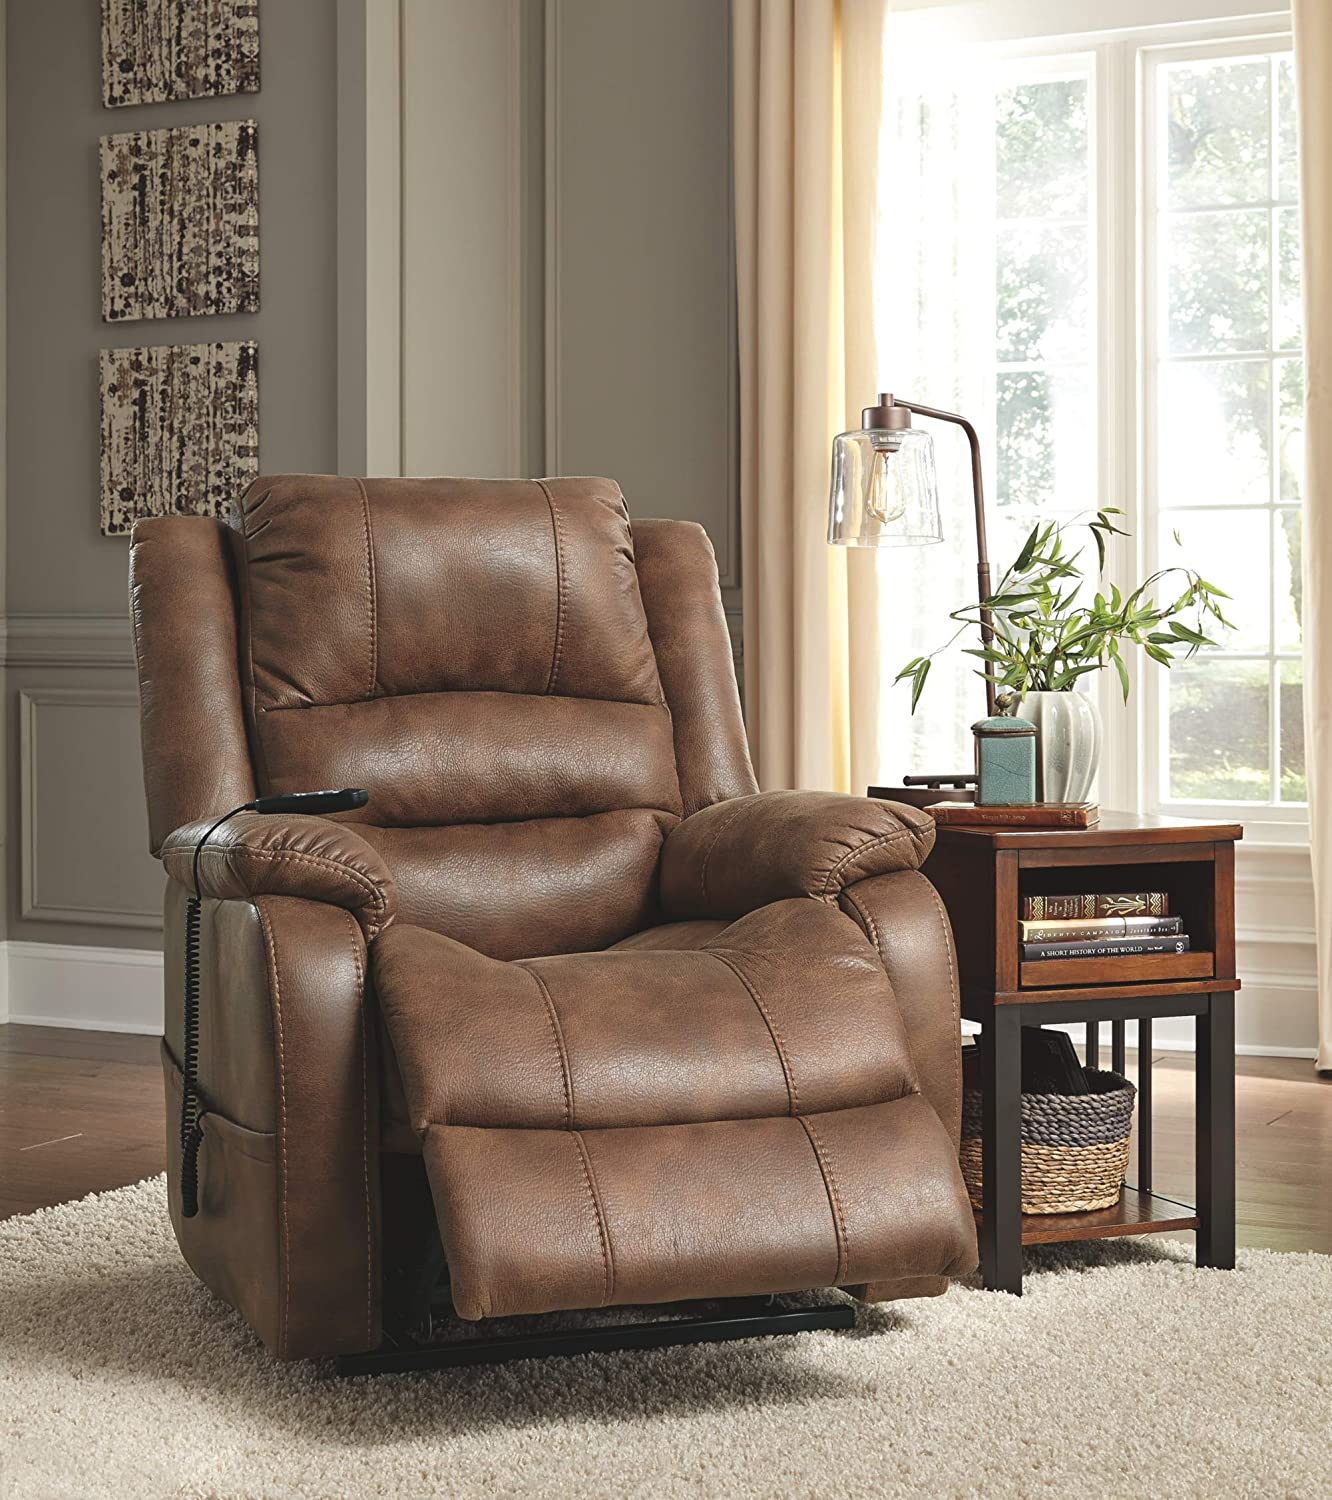 The Best Recliners 2020 Reclining Chairs With Massage Feature Rolling Stone